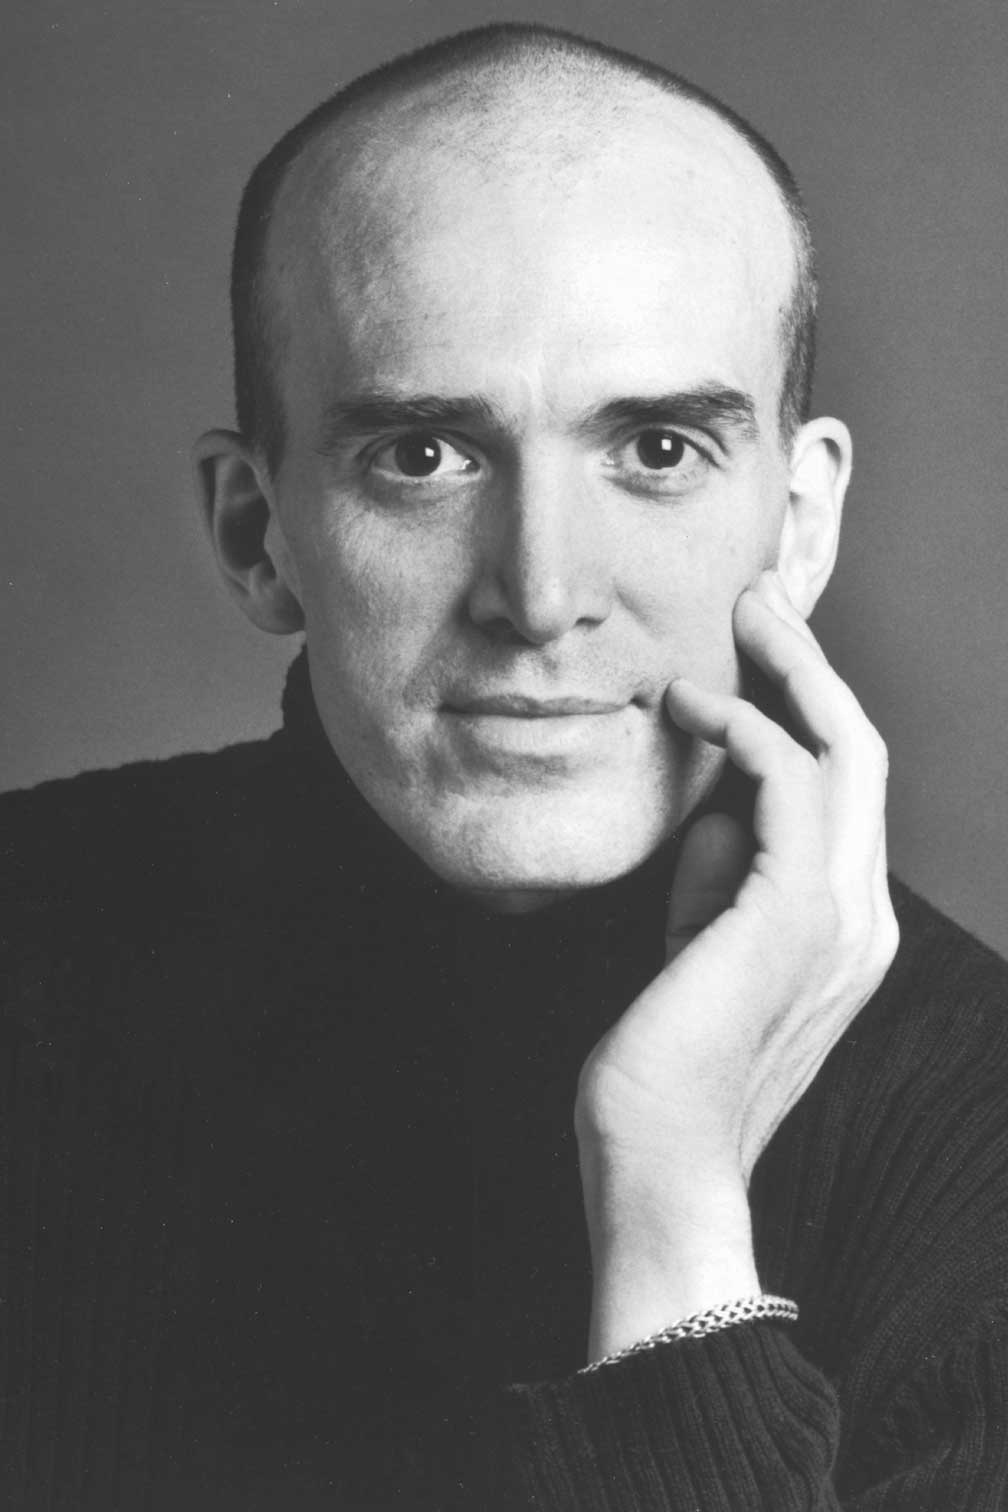 The Hartt School Names Stephen Pier as Director of the Dance Division